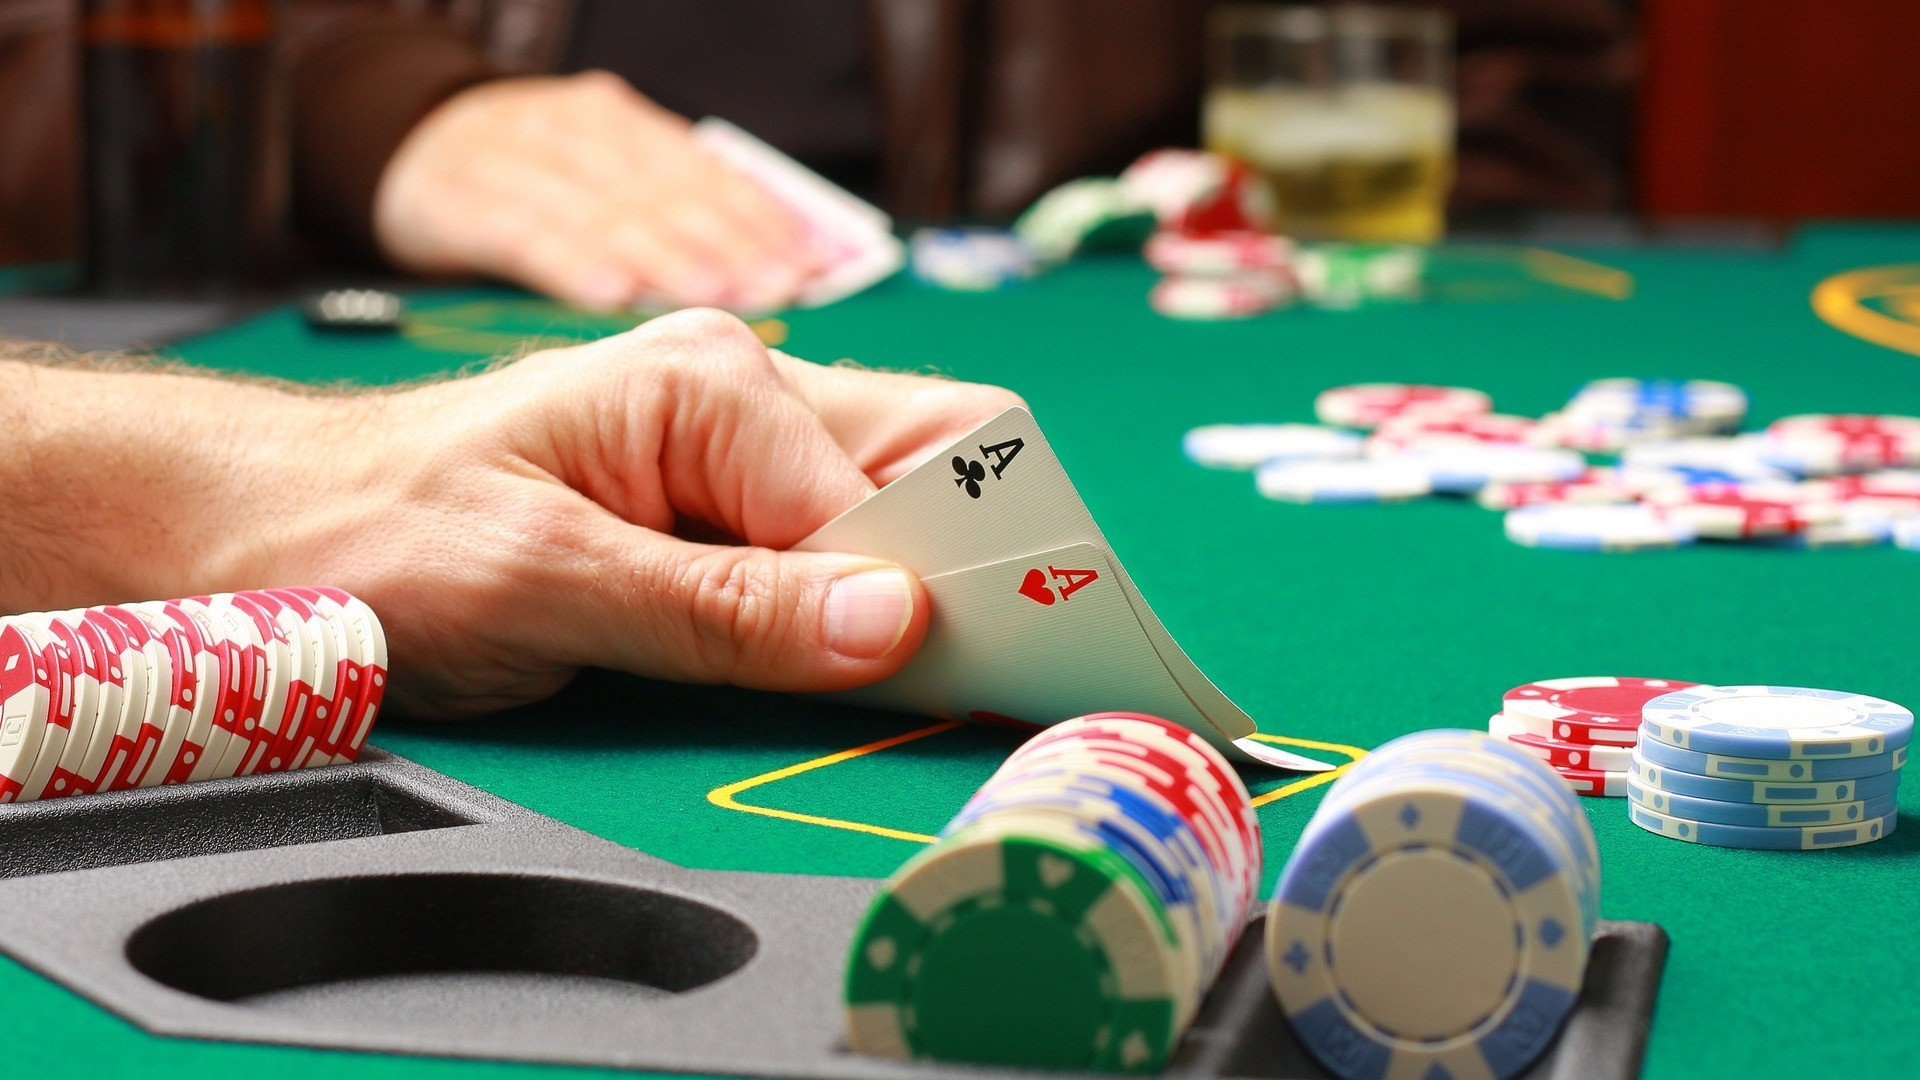 Filthy Truths Concerning Gambling Revealed